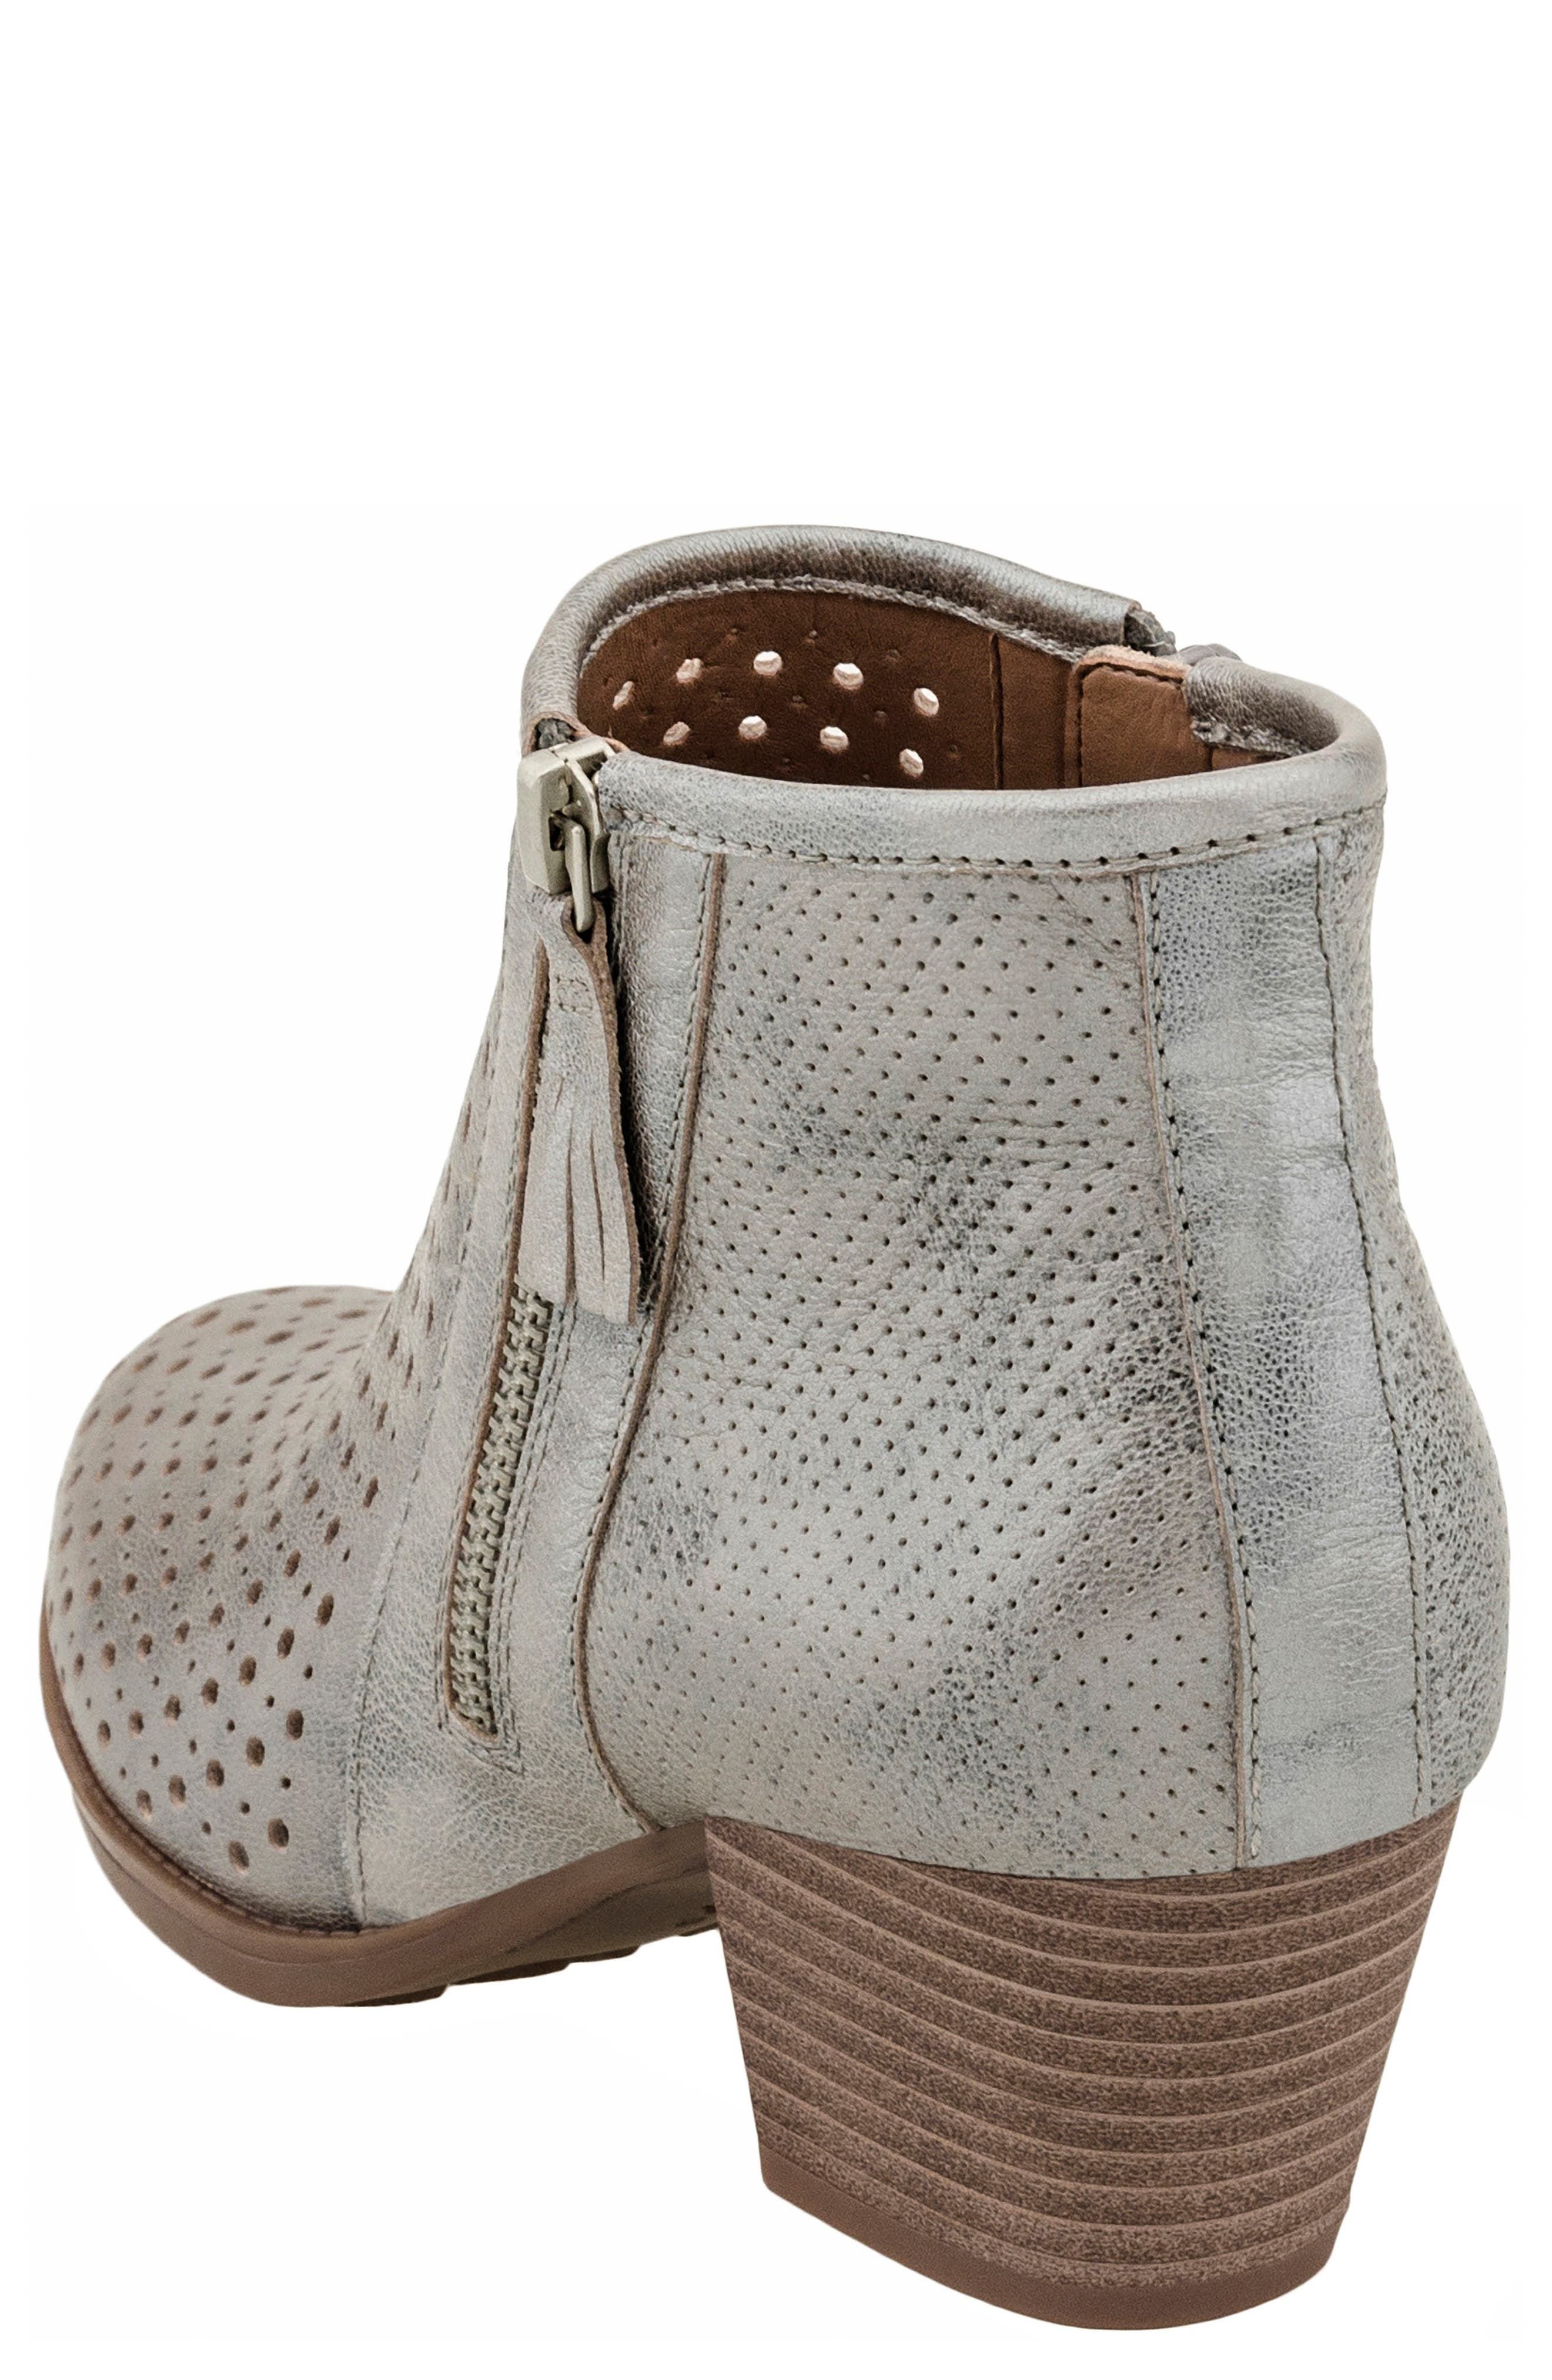 Pineberry Bootie,                             Alternate thumbnail 5, color,